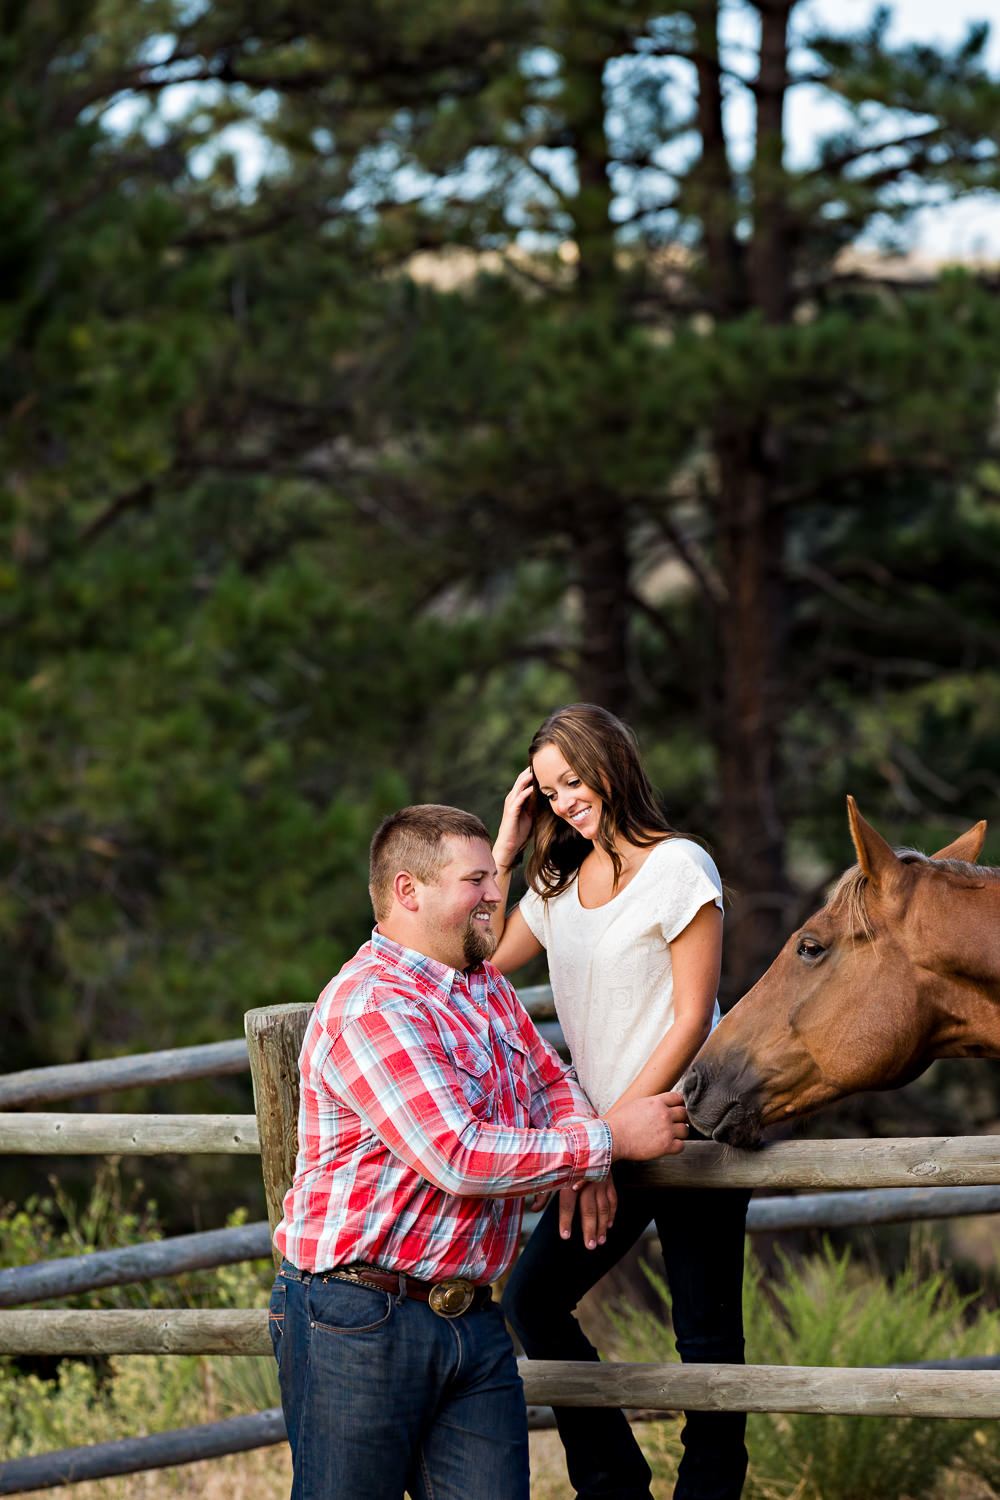 billings-montana-engagement-session-couple-pet-horse.jpg